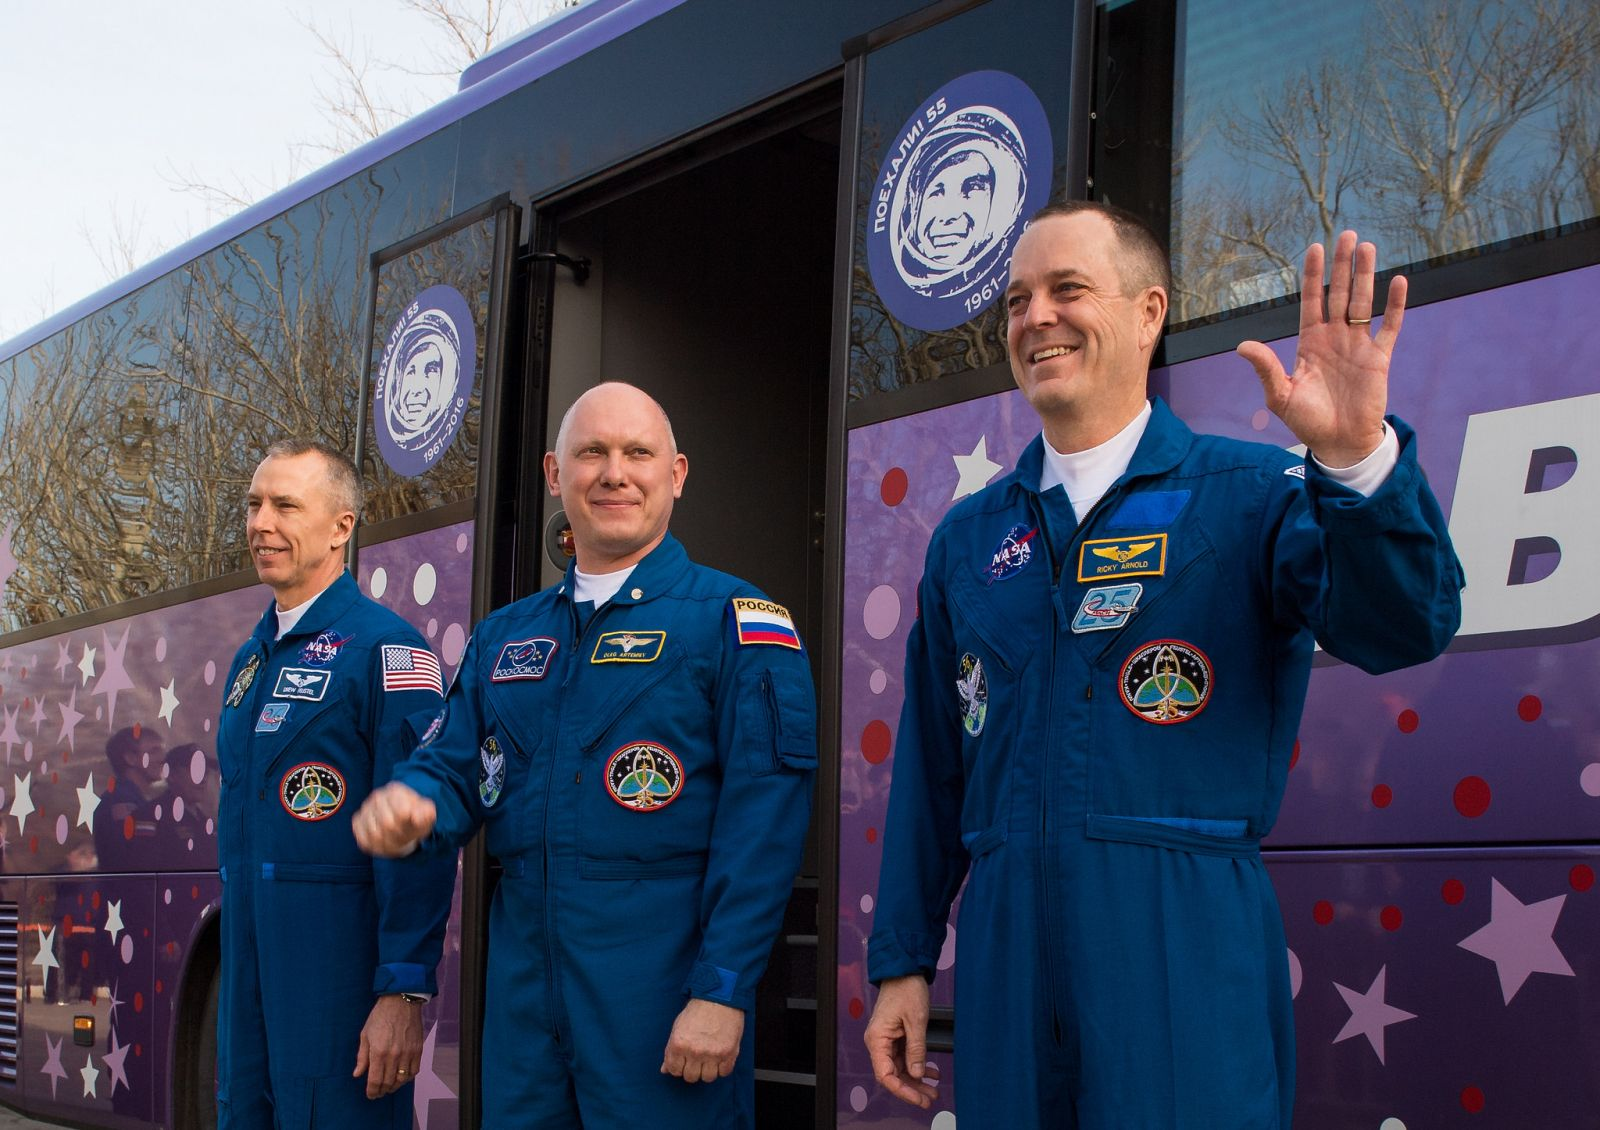 NASA's Drew Feustel, left, Russia's Oleg Artemyev, center, and NASA's Ricky Arnold wave to their friends and family in a final farewell in advance of their five month stay in space. Photo Credit: Joel Kowsky / NASA